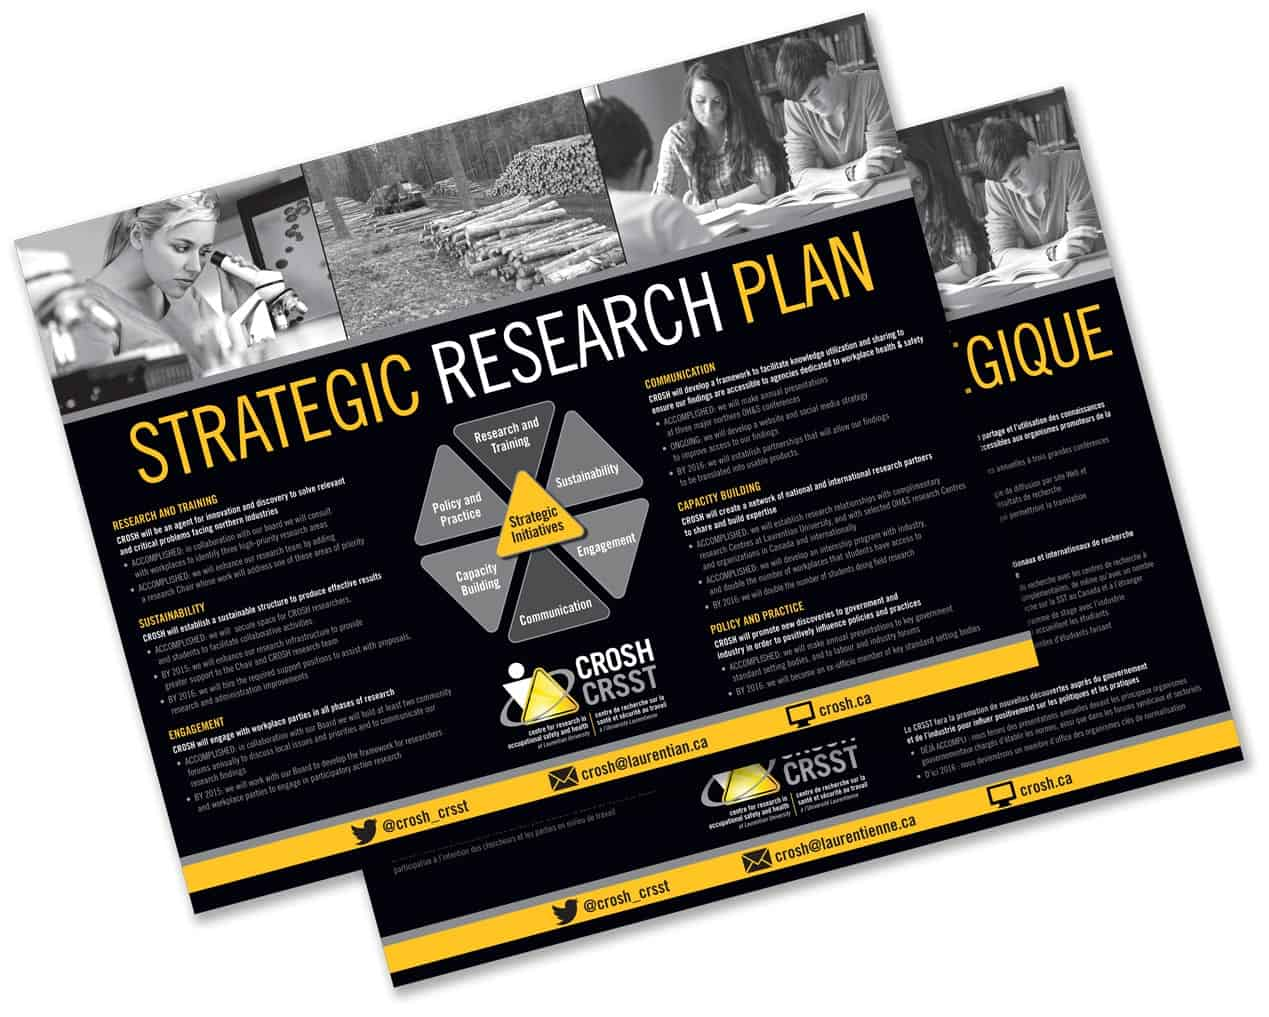 Strategic Research Plan leaflet